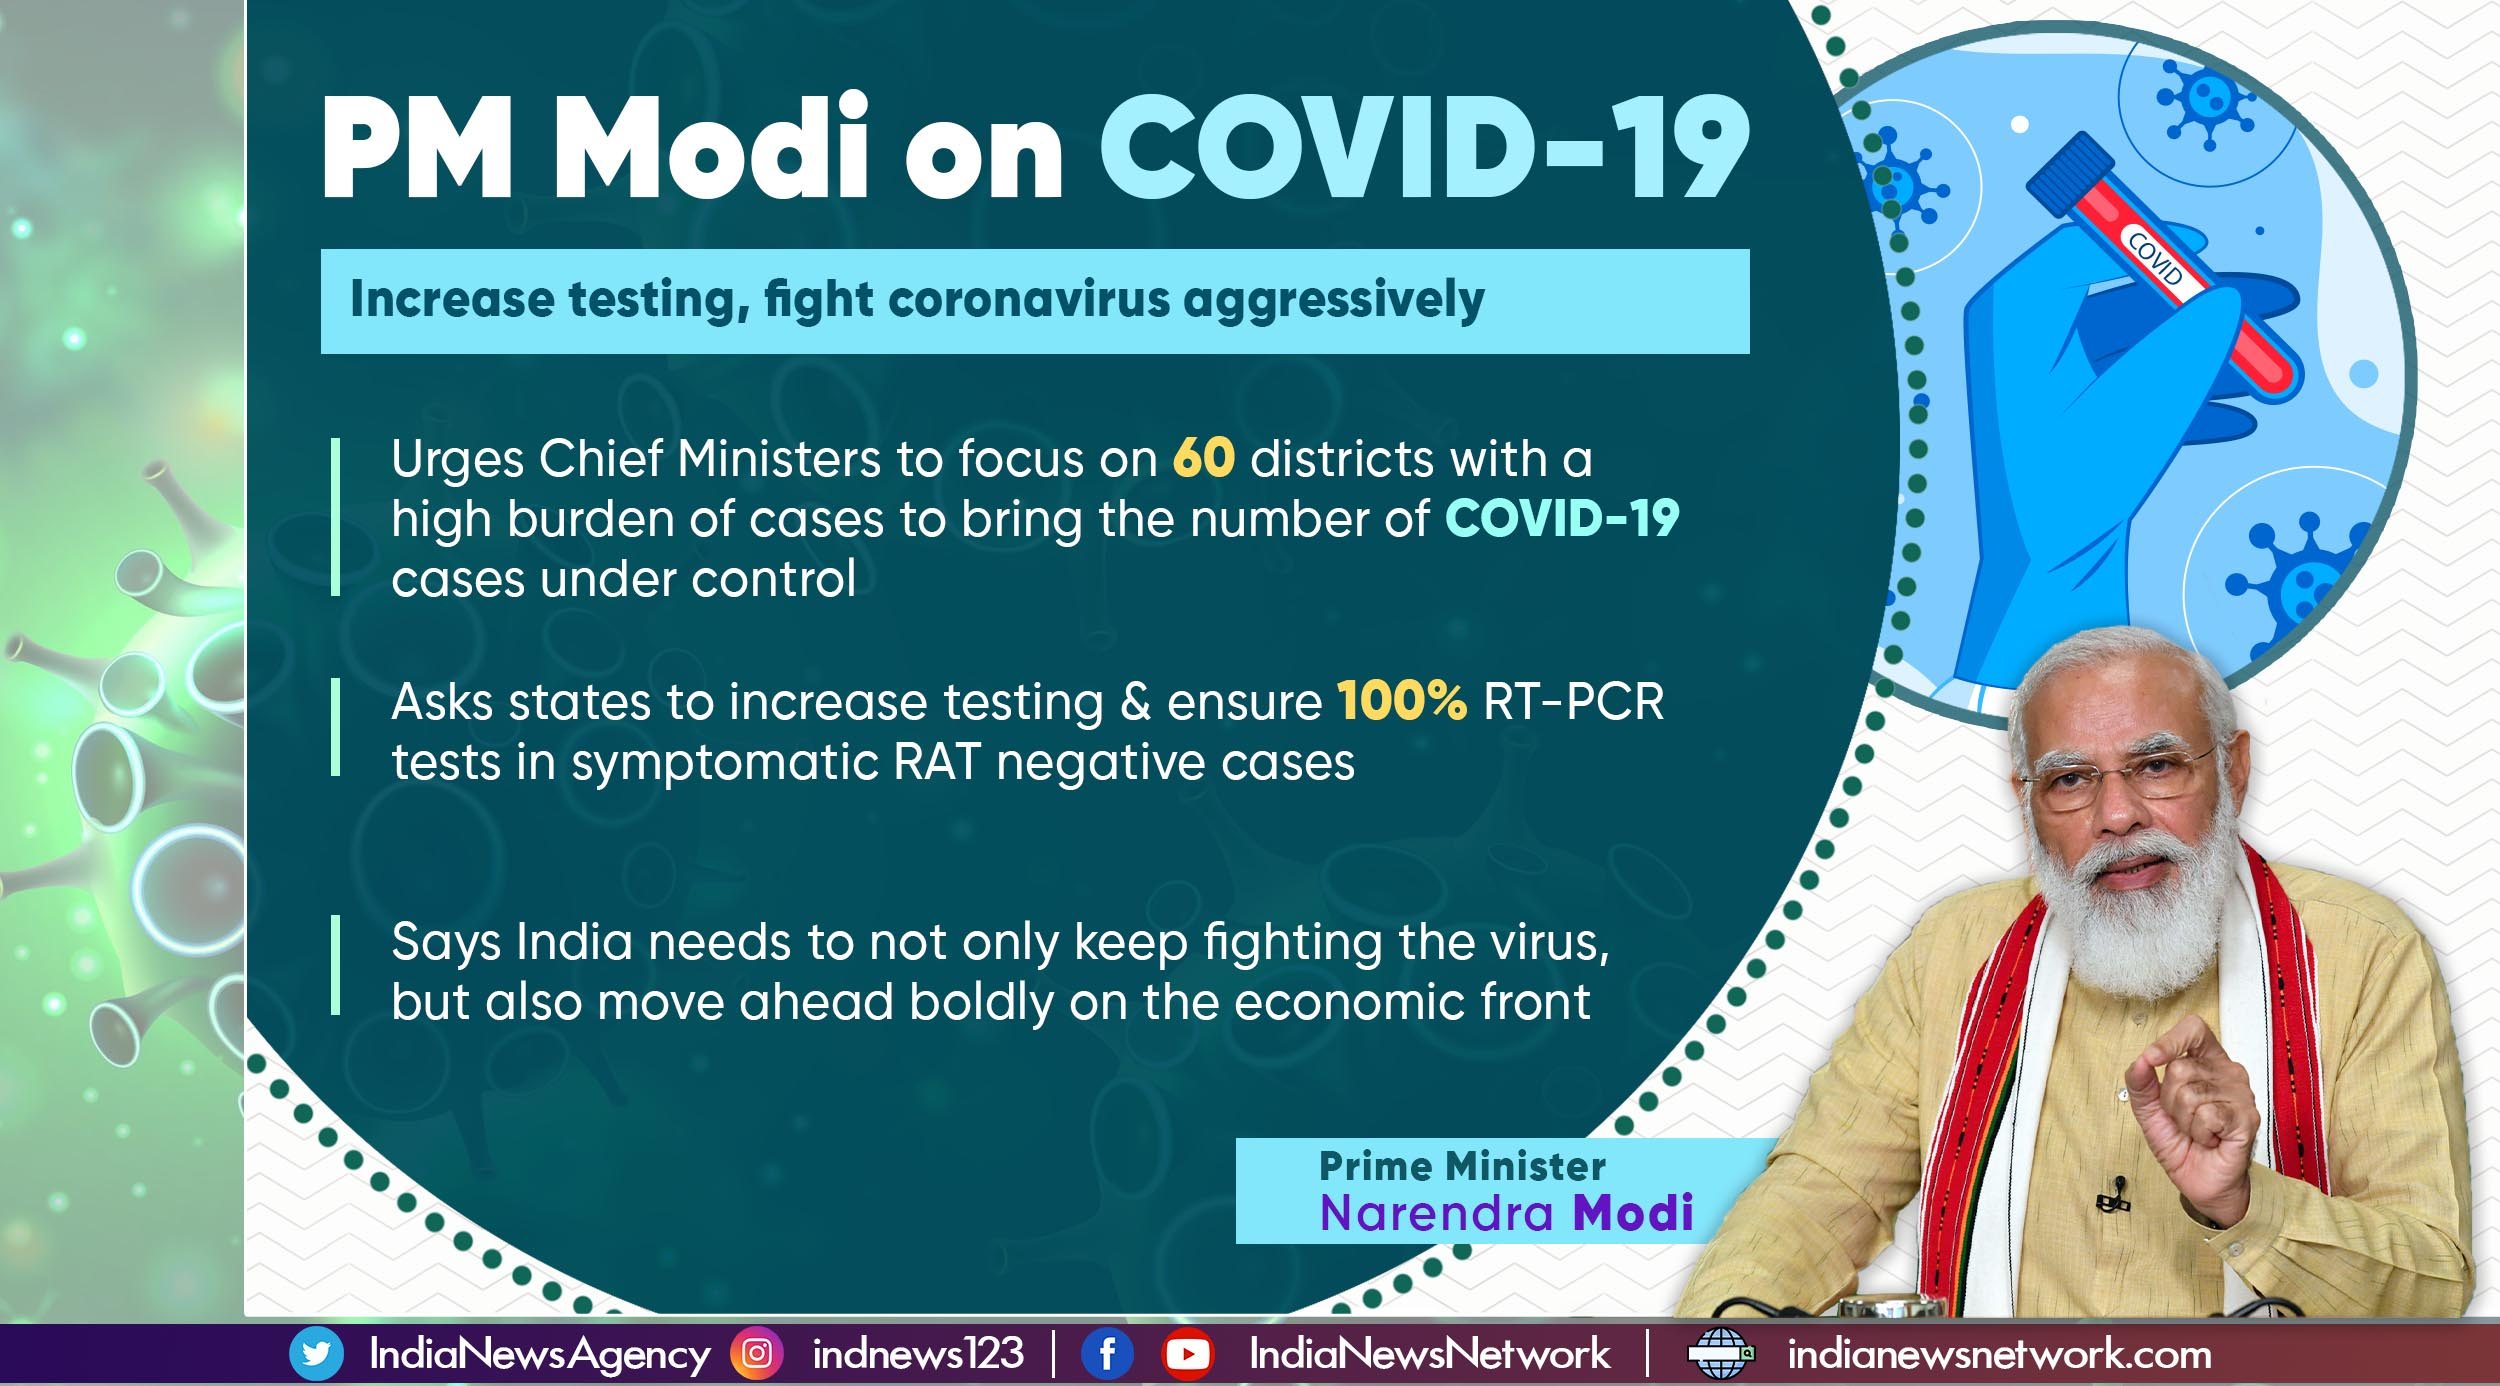 Fighting COVID-19: PM Modi asks 7 states to focus on 60 districts